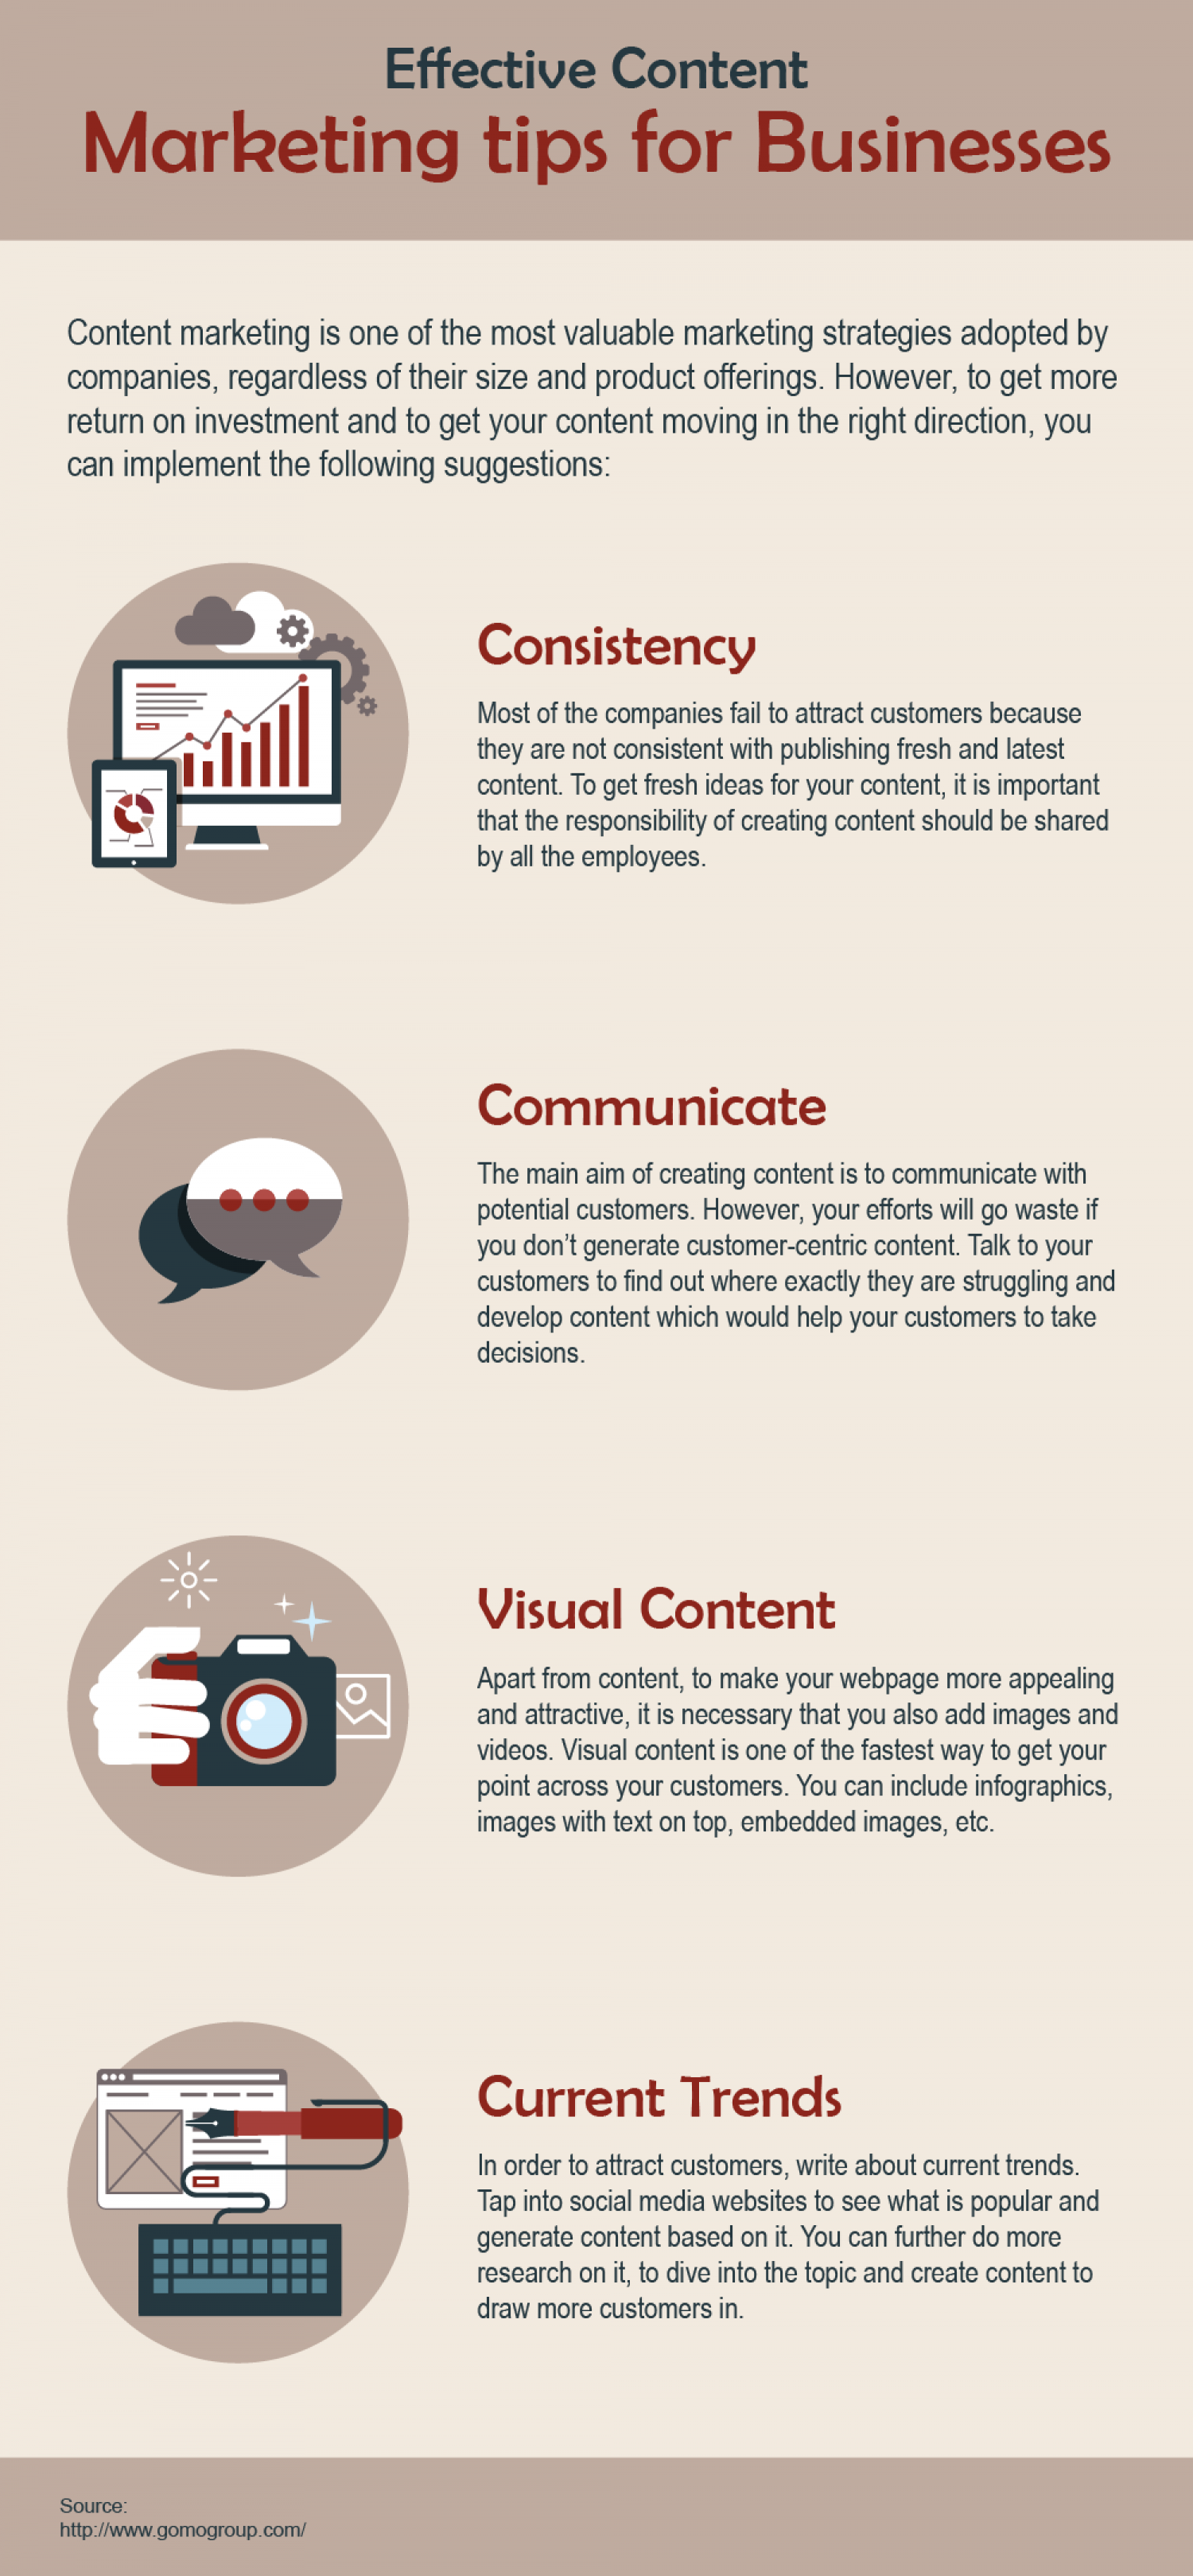 4 Tips for Effective Content Marketing Infographic